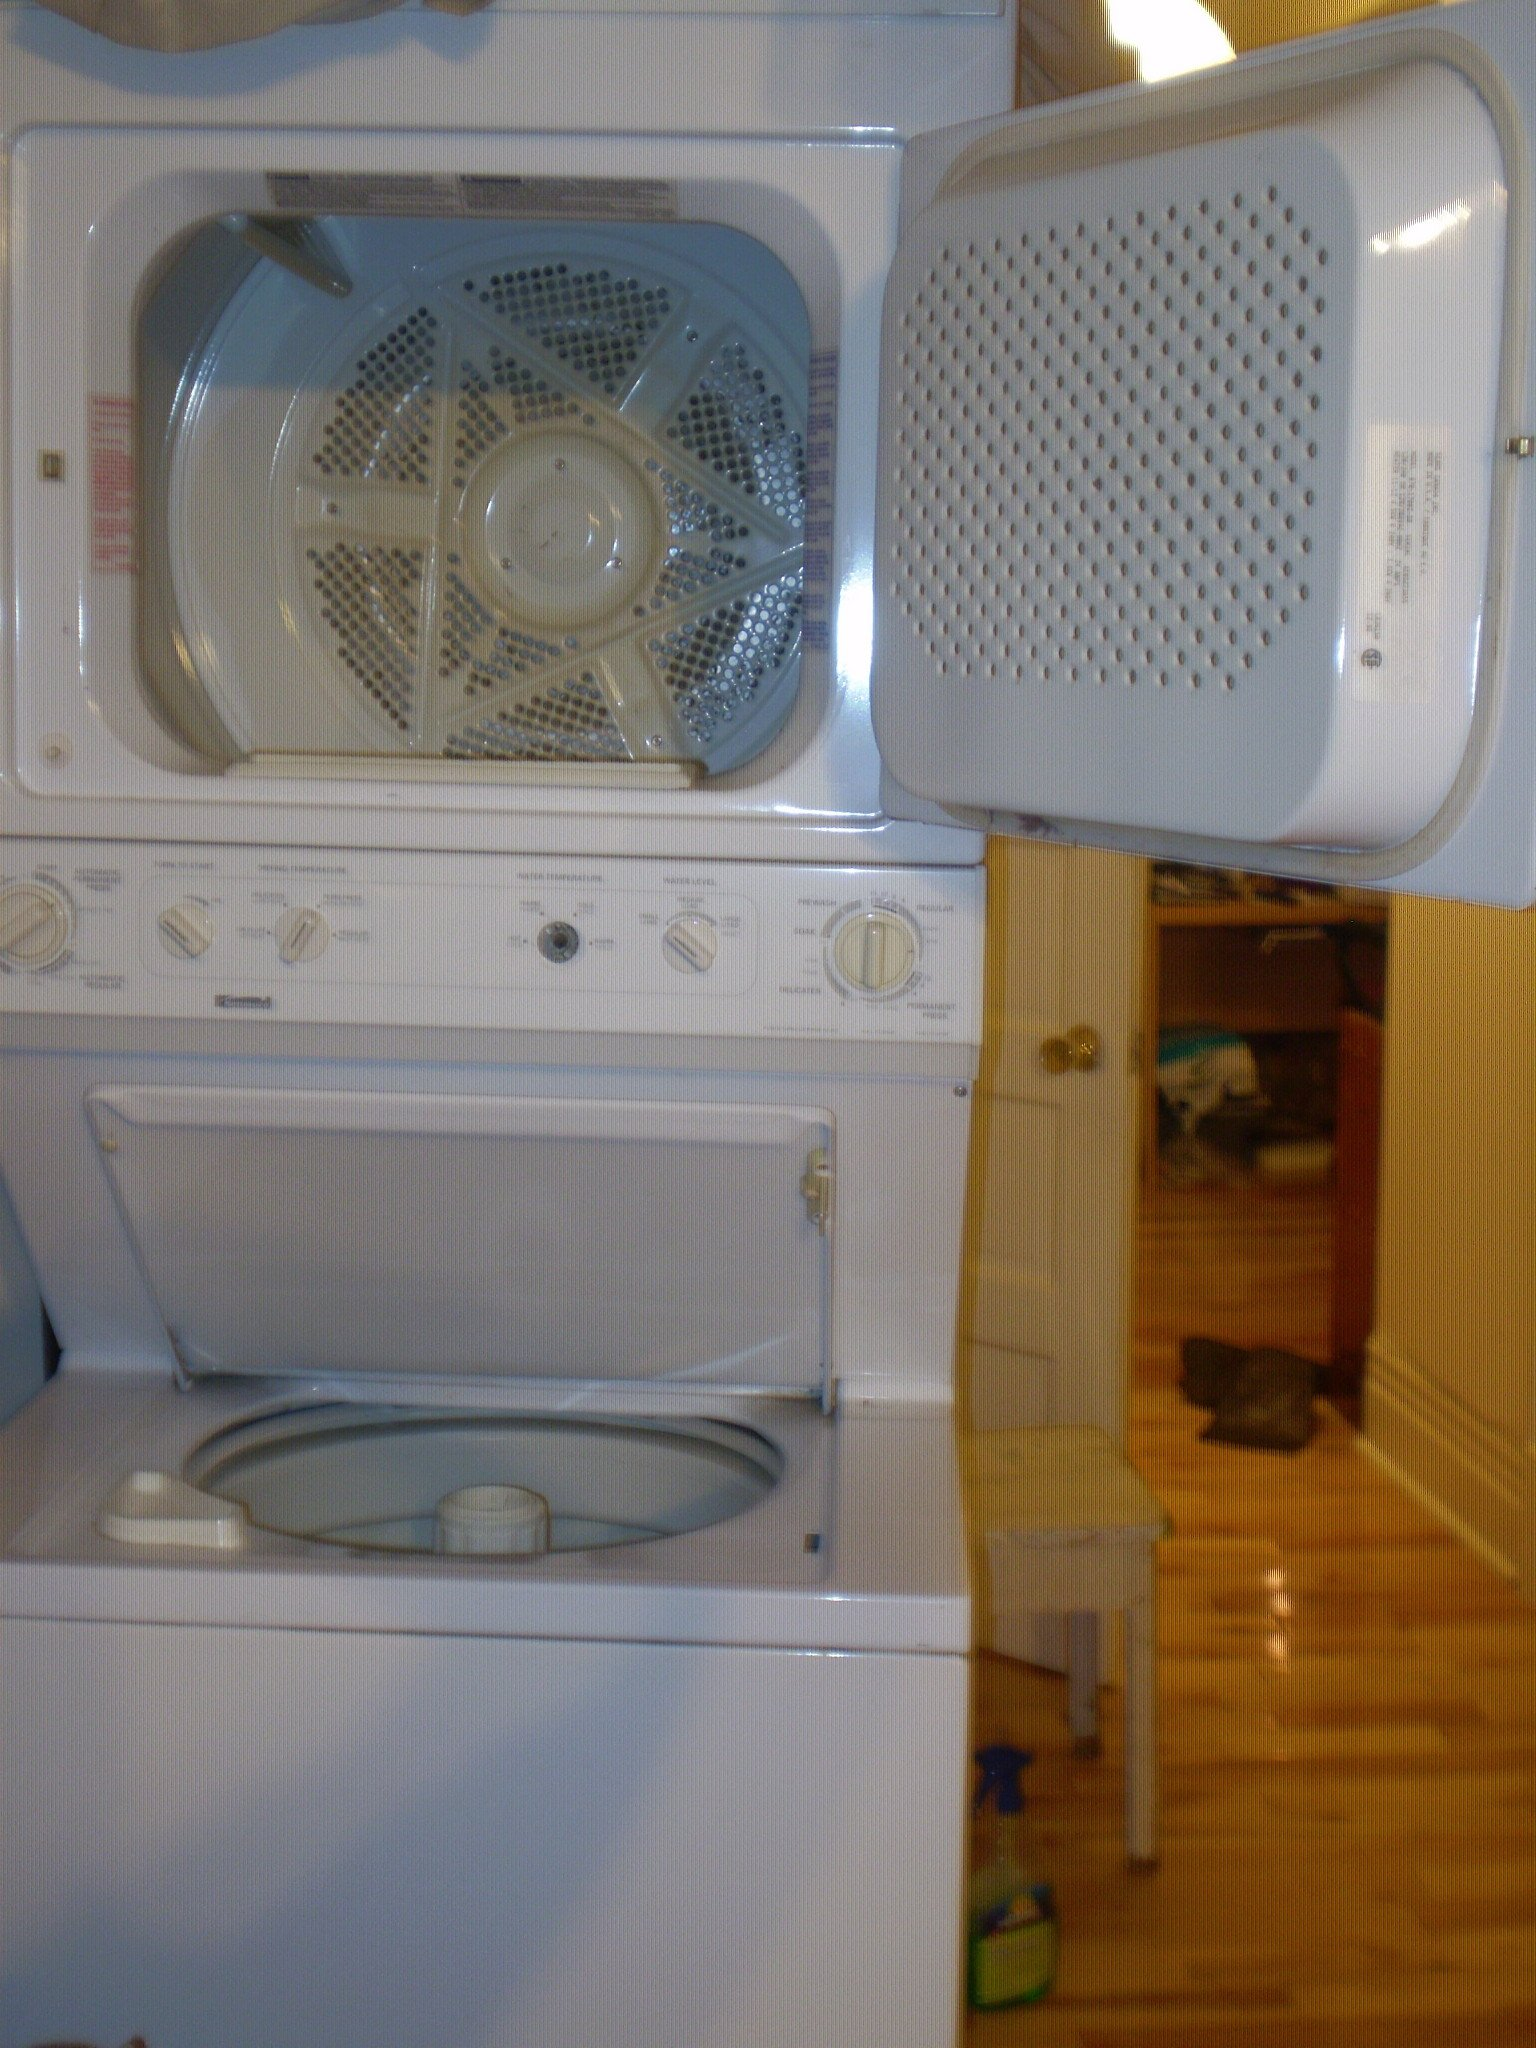 My Kenmore Stackable Washer And Dryer Model No 970 17802